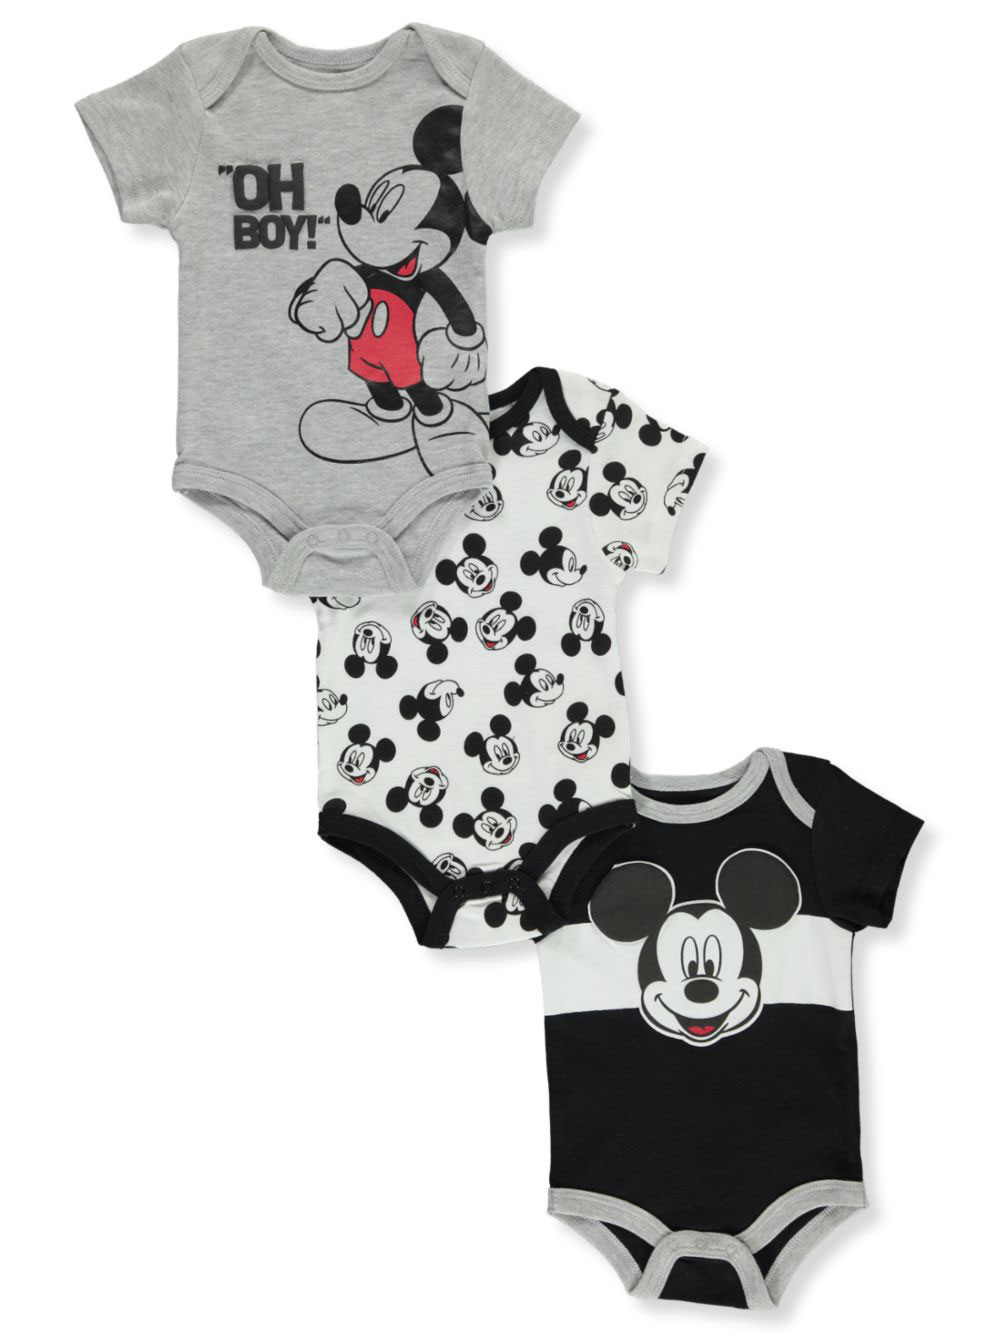 Boys Black and White Bodysuits